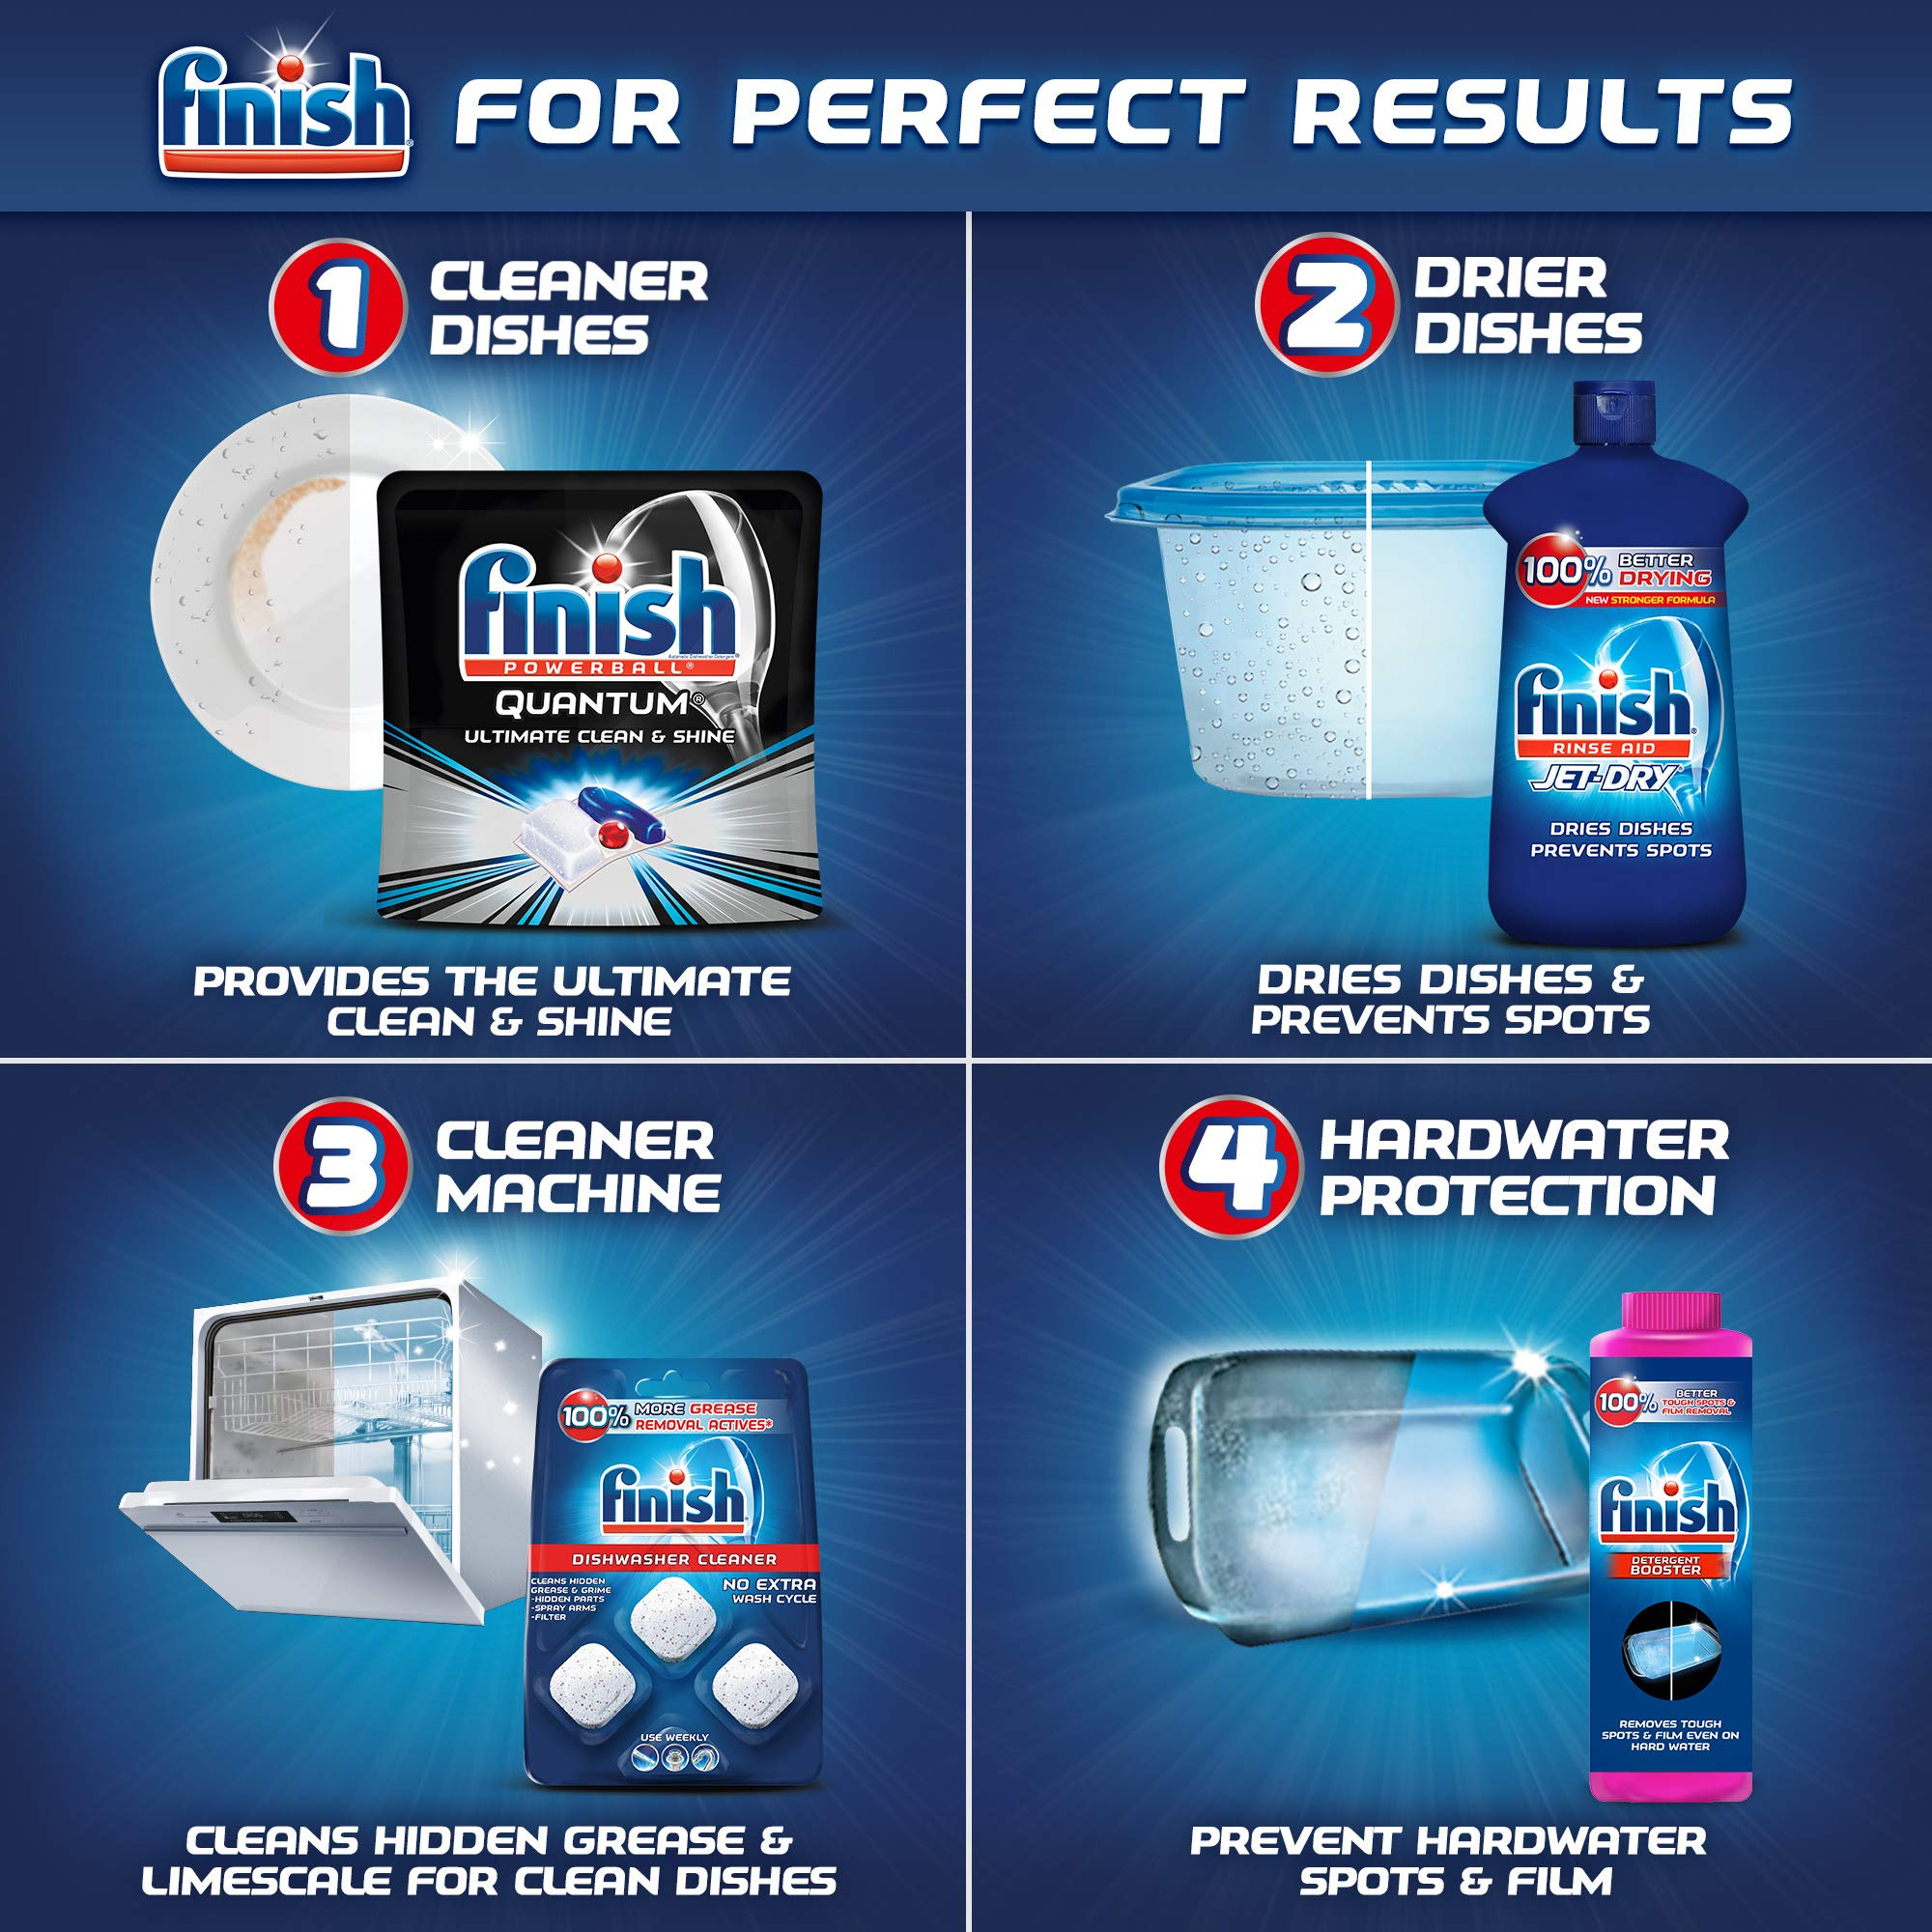 Finish - Quantum - 58ct - Dishwasher Detergent - Powerball - Ultimate Clean & Shine - Dishwashing Tablets - Dish Tabs by Finish (Image #10)